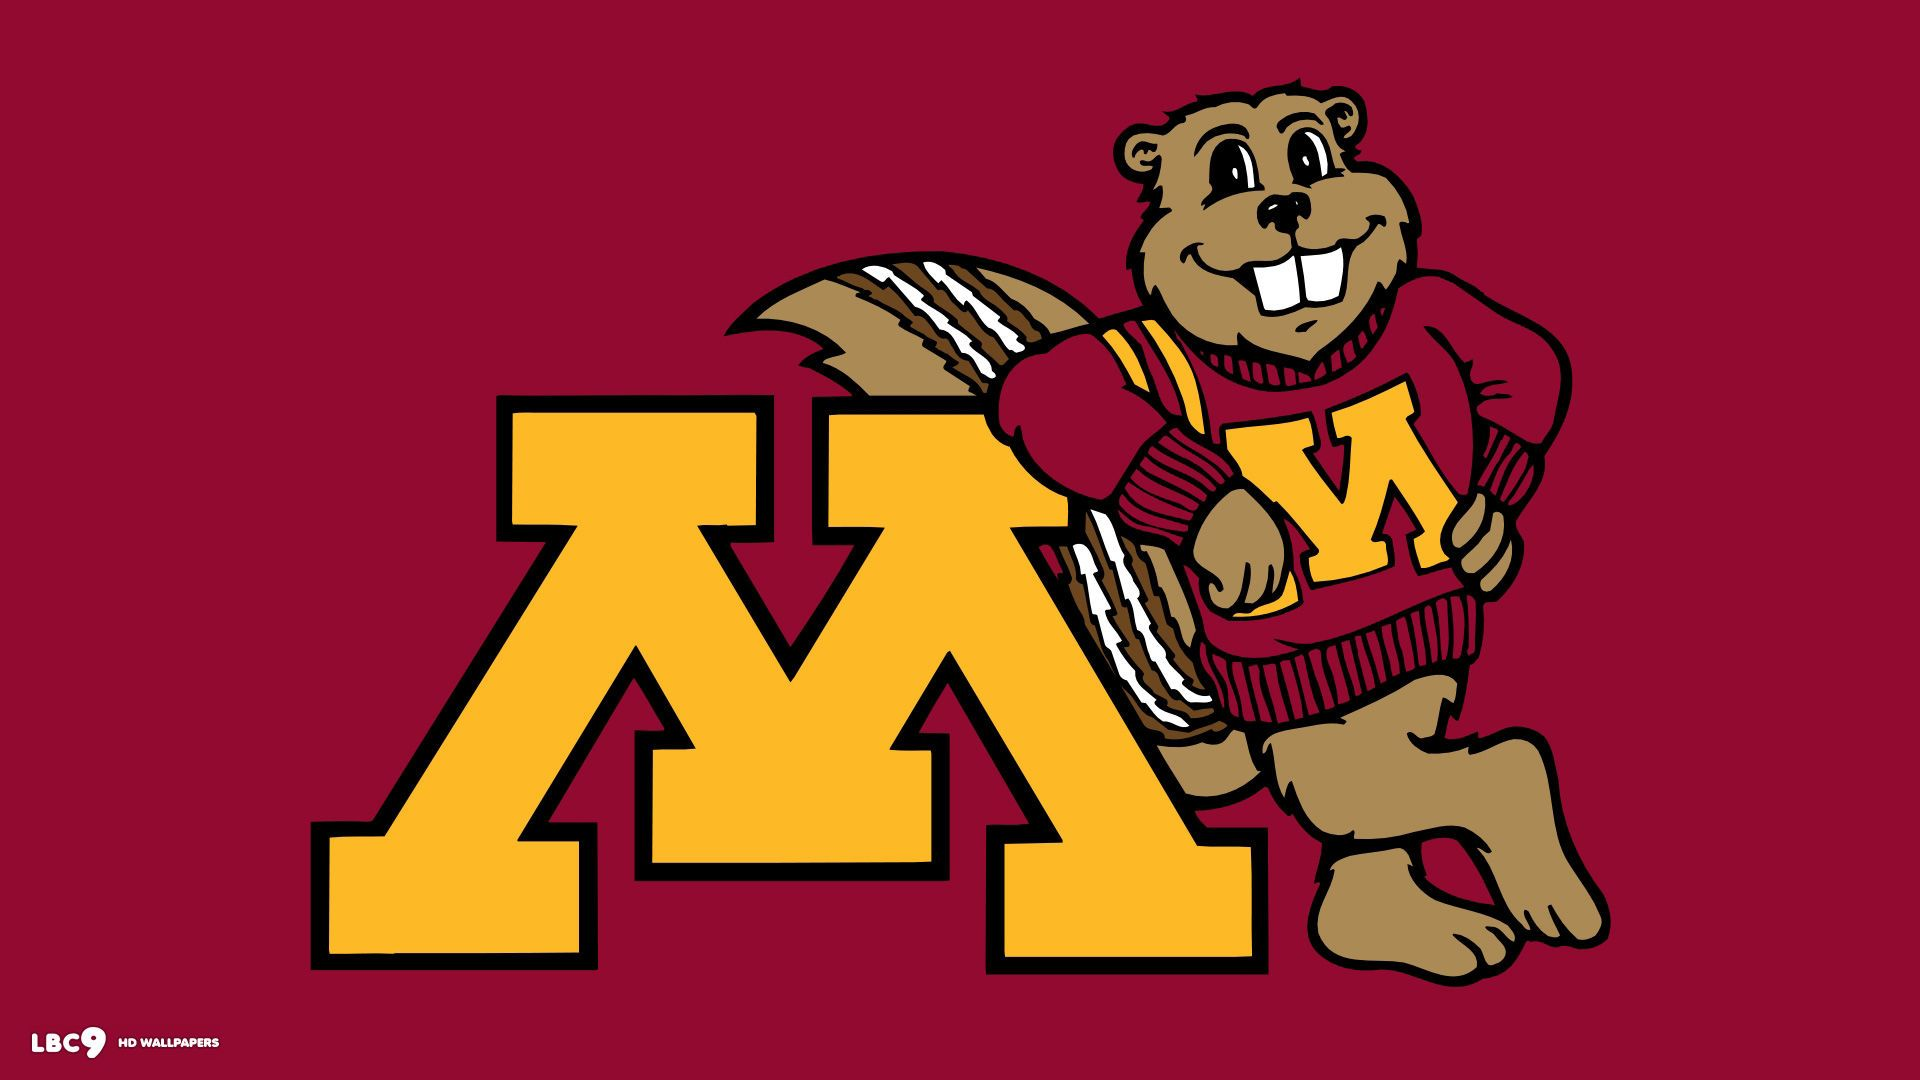 minnesota golden gophers wallpaper 1/3 | college athletics hd ...